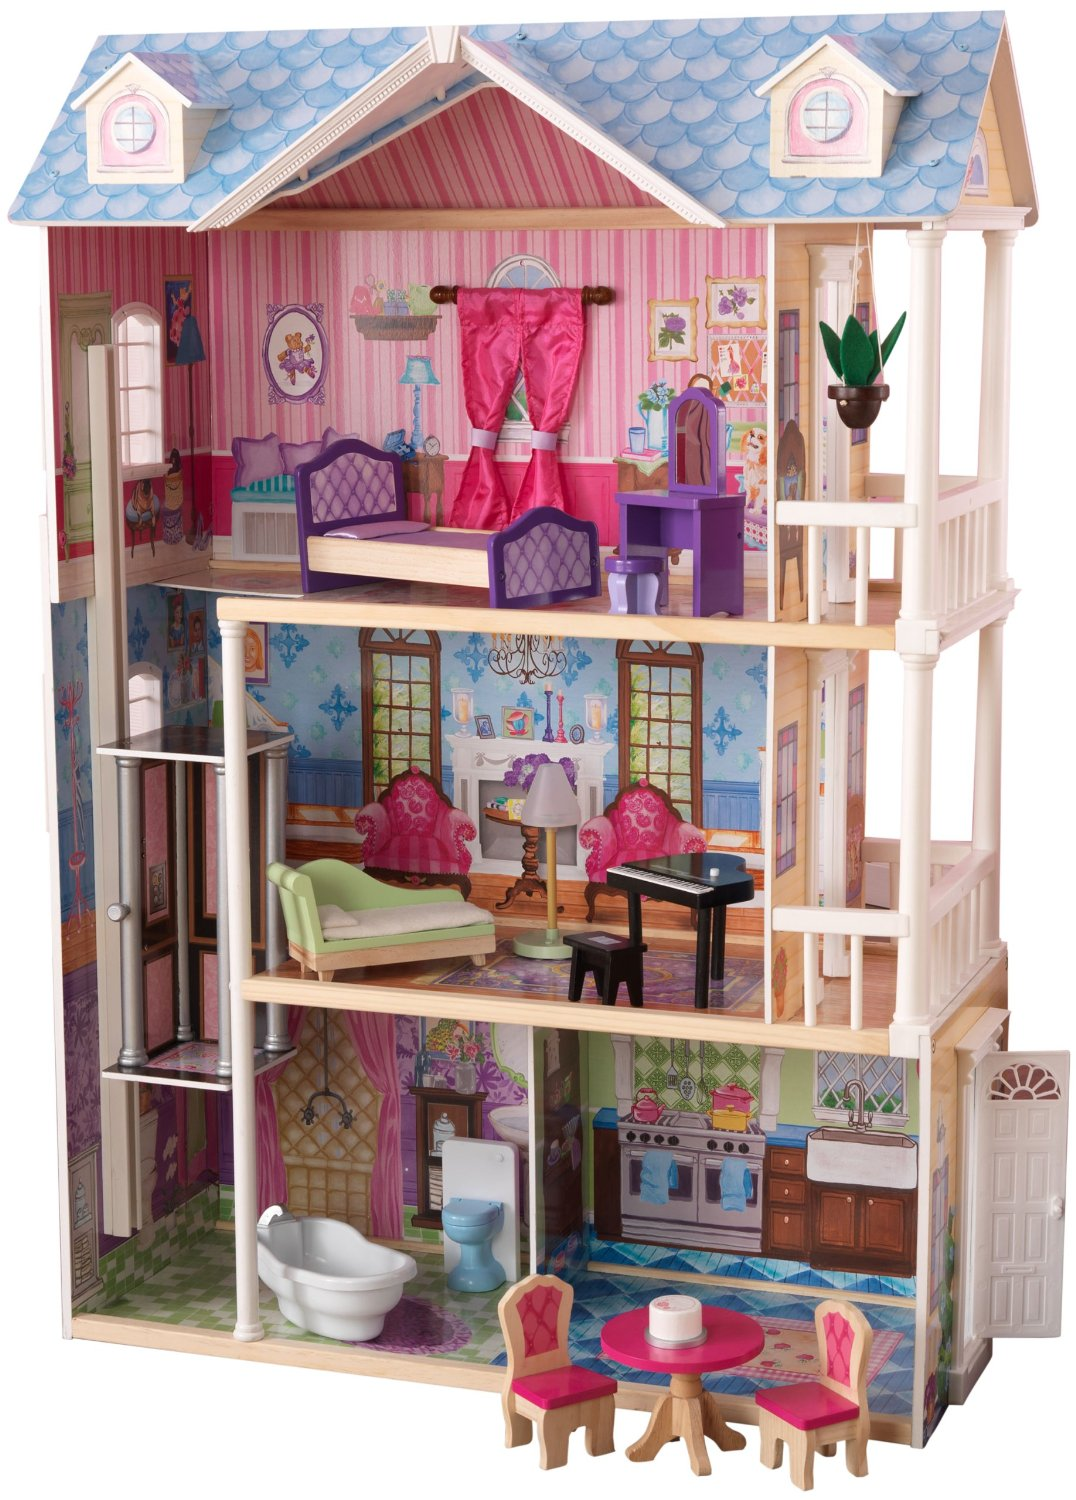 amazing kidkraft dollhouse made of wood with triple tier design and living room on the second floor for nursery decor ideas